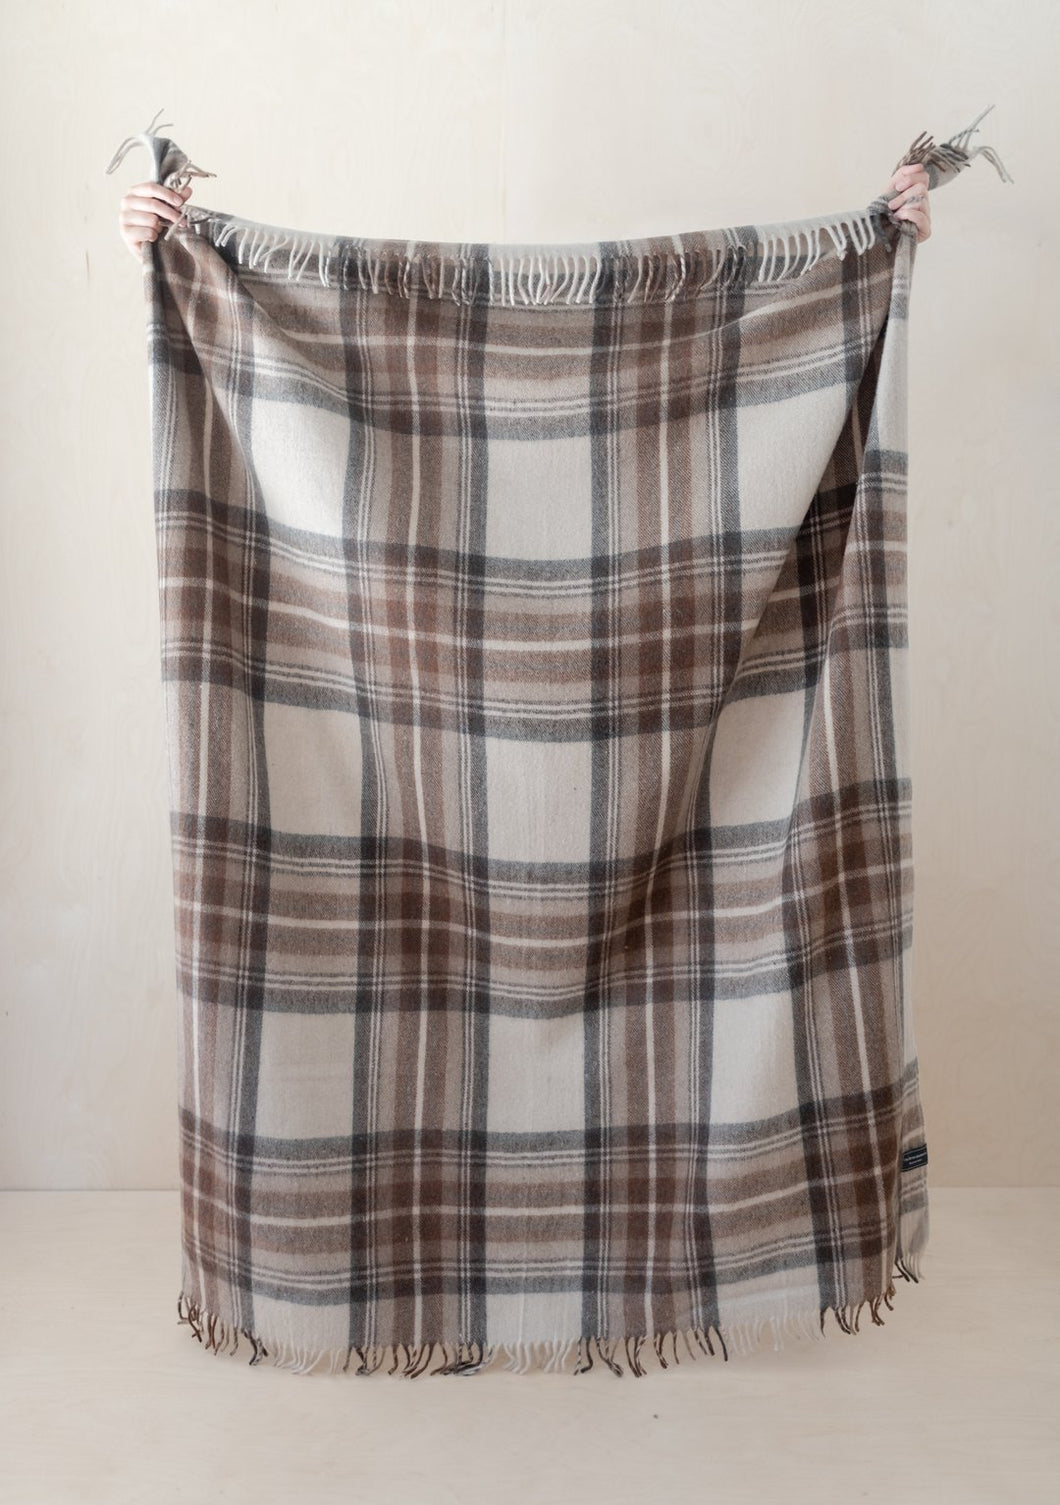 Recycled Wool Blanket in Stewart Natural Dress Tartan, Tartan Blanket